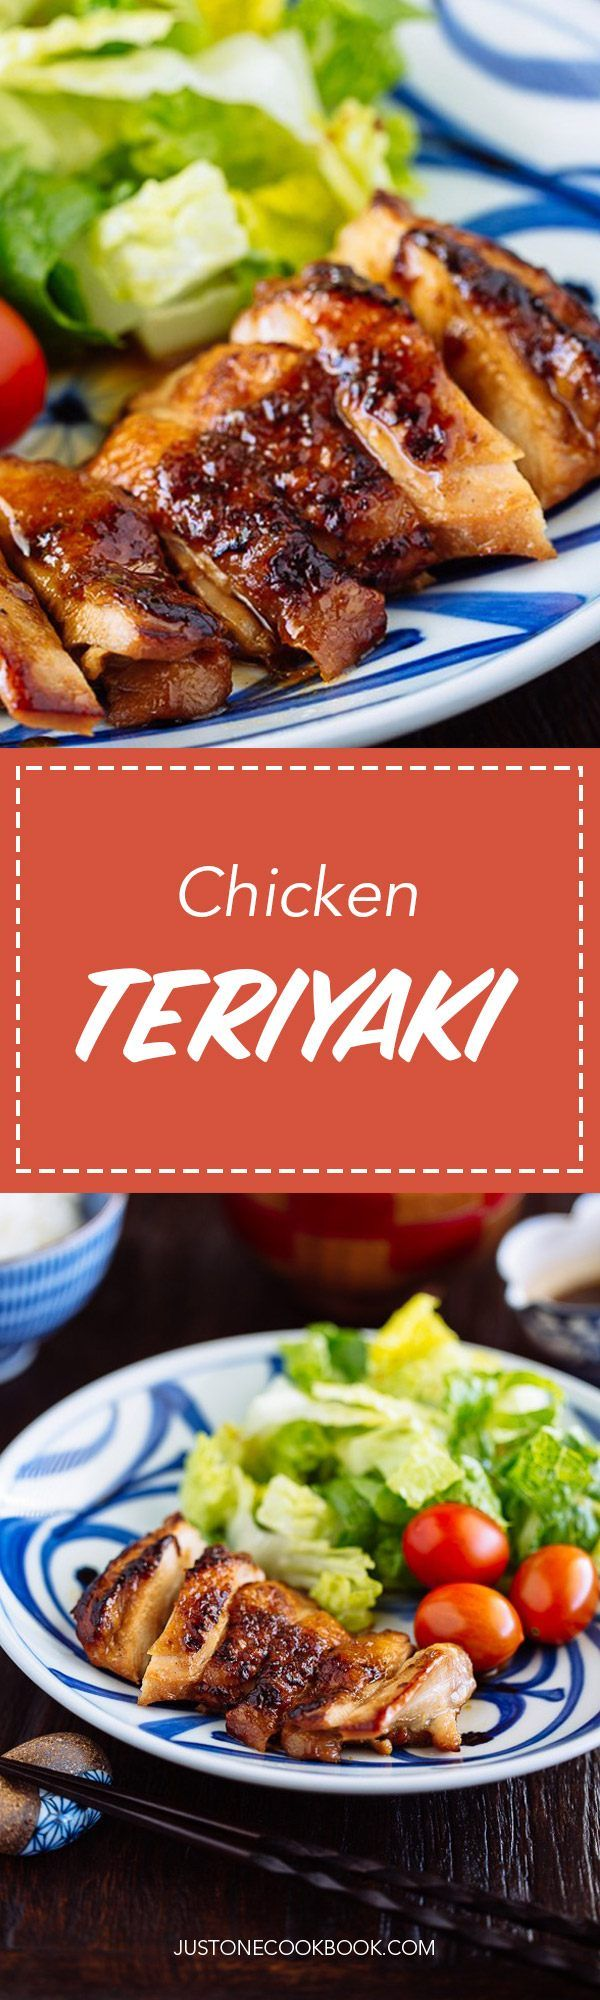 Chicken Teriyaki チキン照り焼き - Juicy and tender chicken glazed in a flavorful homemade sauce, this classic Chicken Teriyaki prepared in the authentic Japanese cooking method will be on your dinner routine. No bottled teriyaki sauce needed! #teriyaki #chicken #teriyakichicken #照り焼きチキン #Japanesefood | Easy Japanese Recipes at JustOneCookbook.com